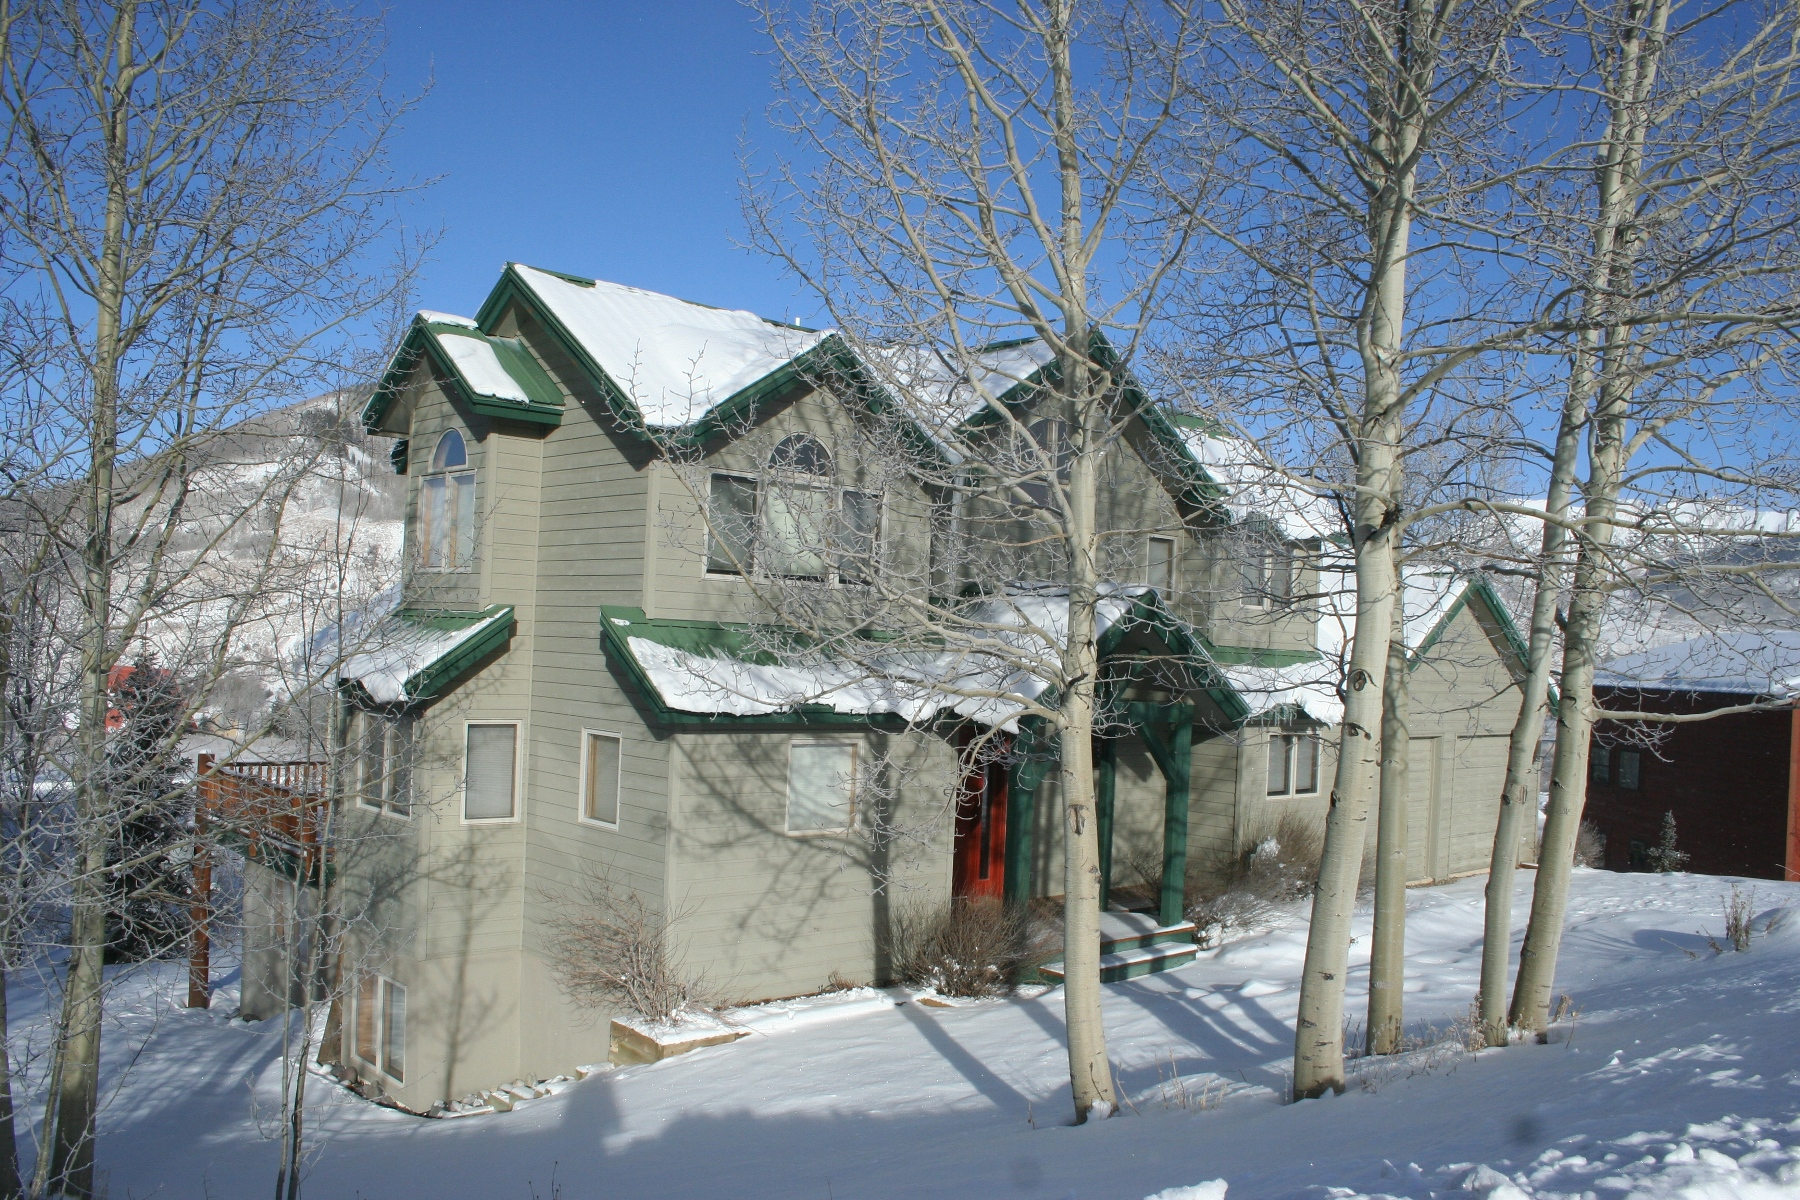 Single Family Home for Sale at Ski Home 29 Cinnamon Mountain Road Mount Crested Butte, Colorado, 81225 United States